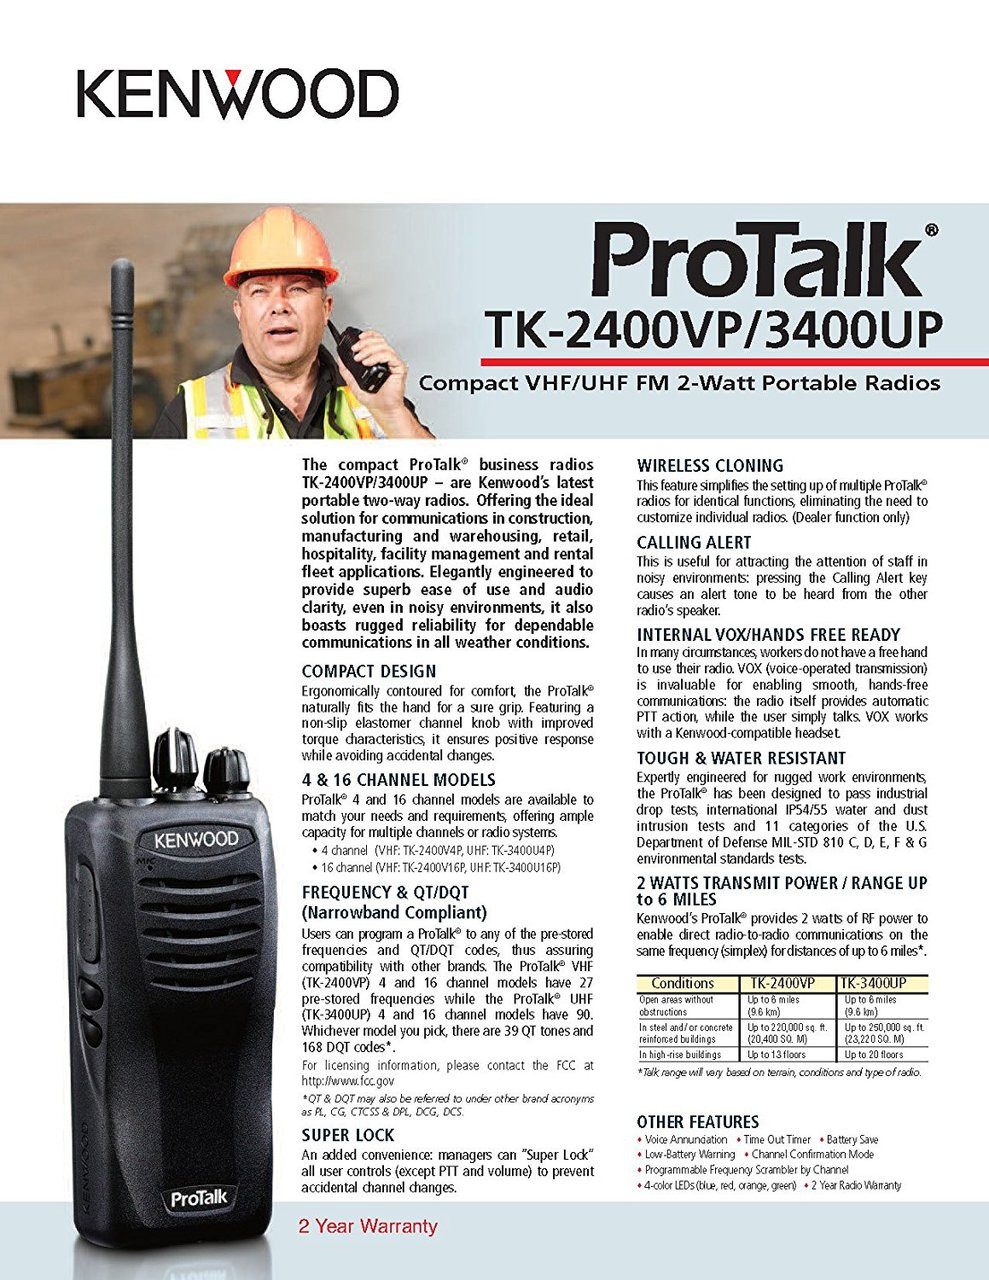 Kenwood ProTalk TK-3400UP Spec Sheet Page 1 of 2